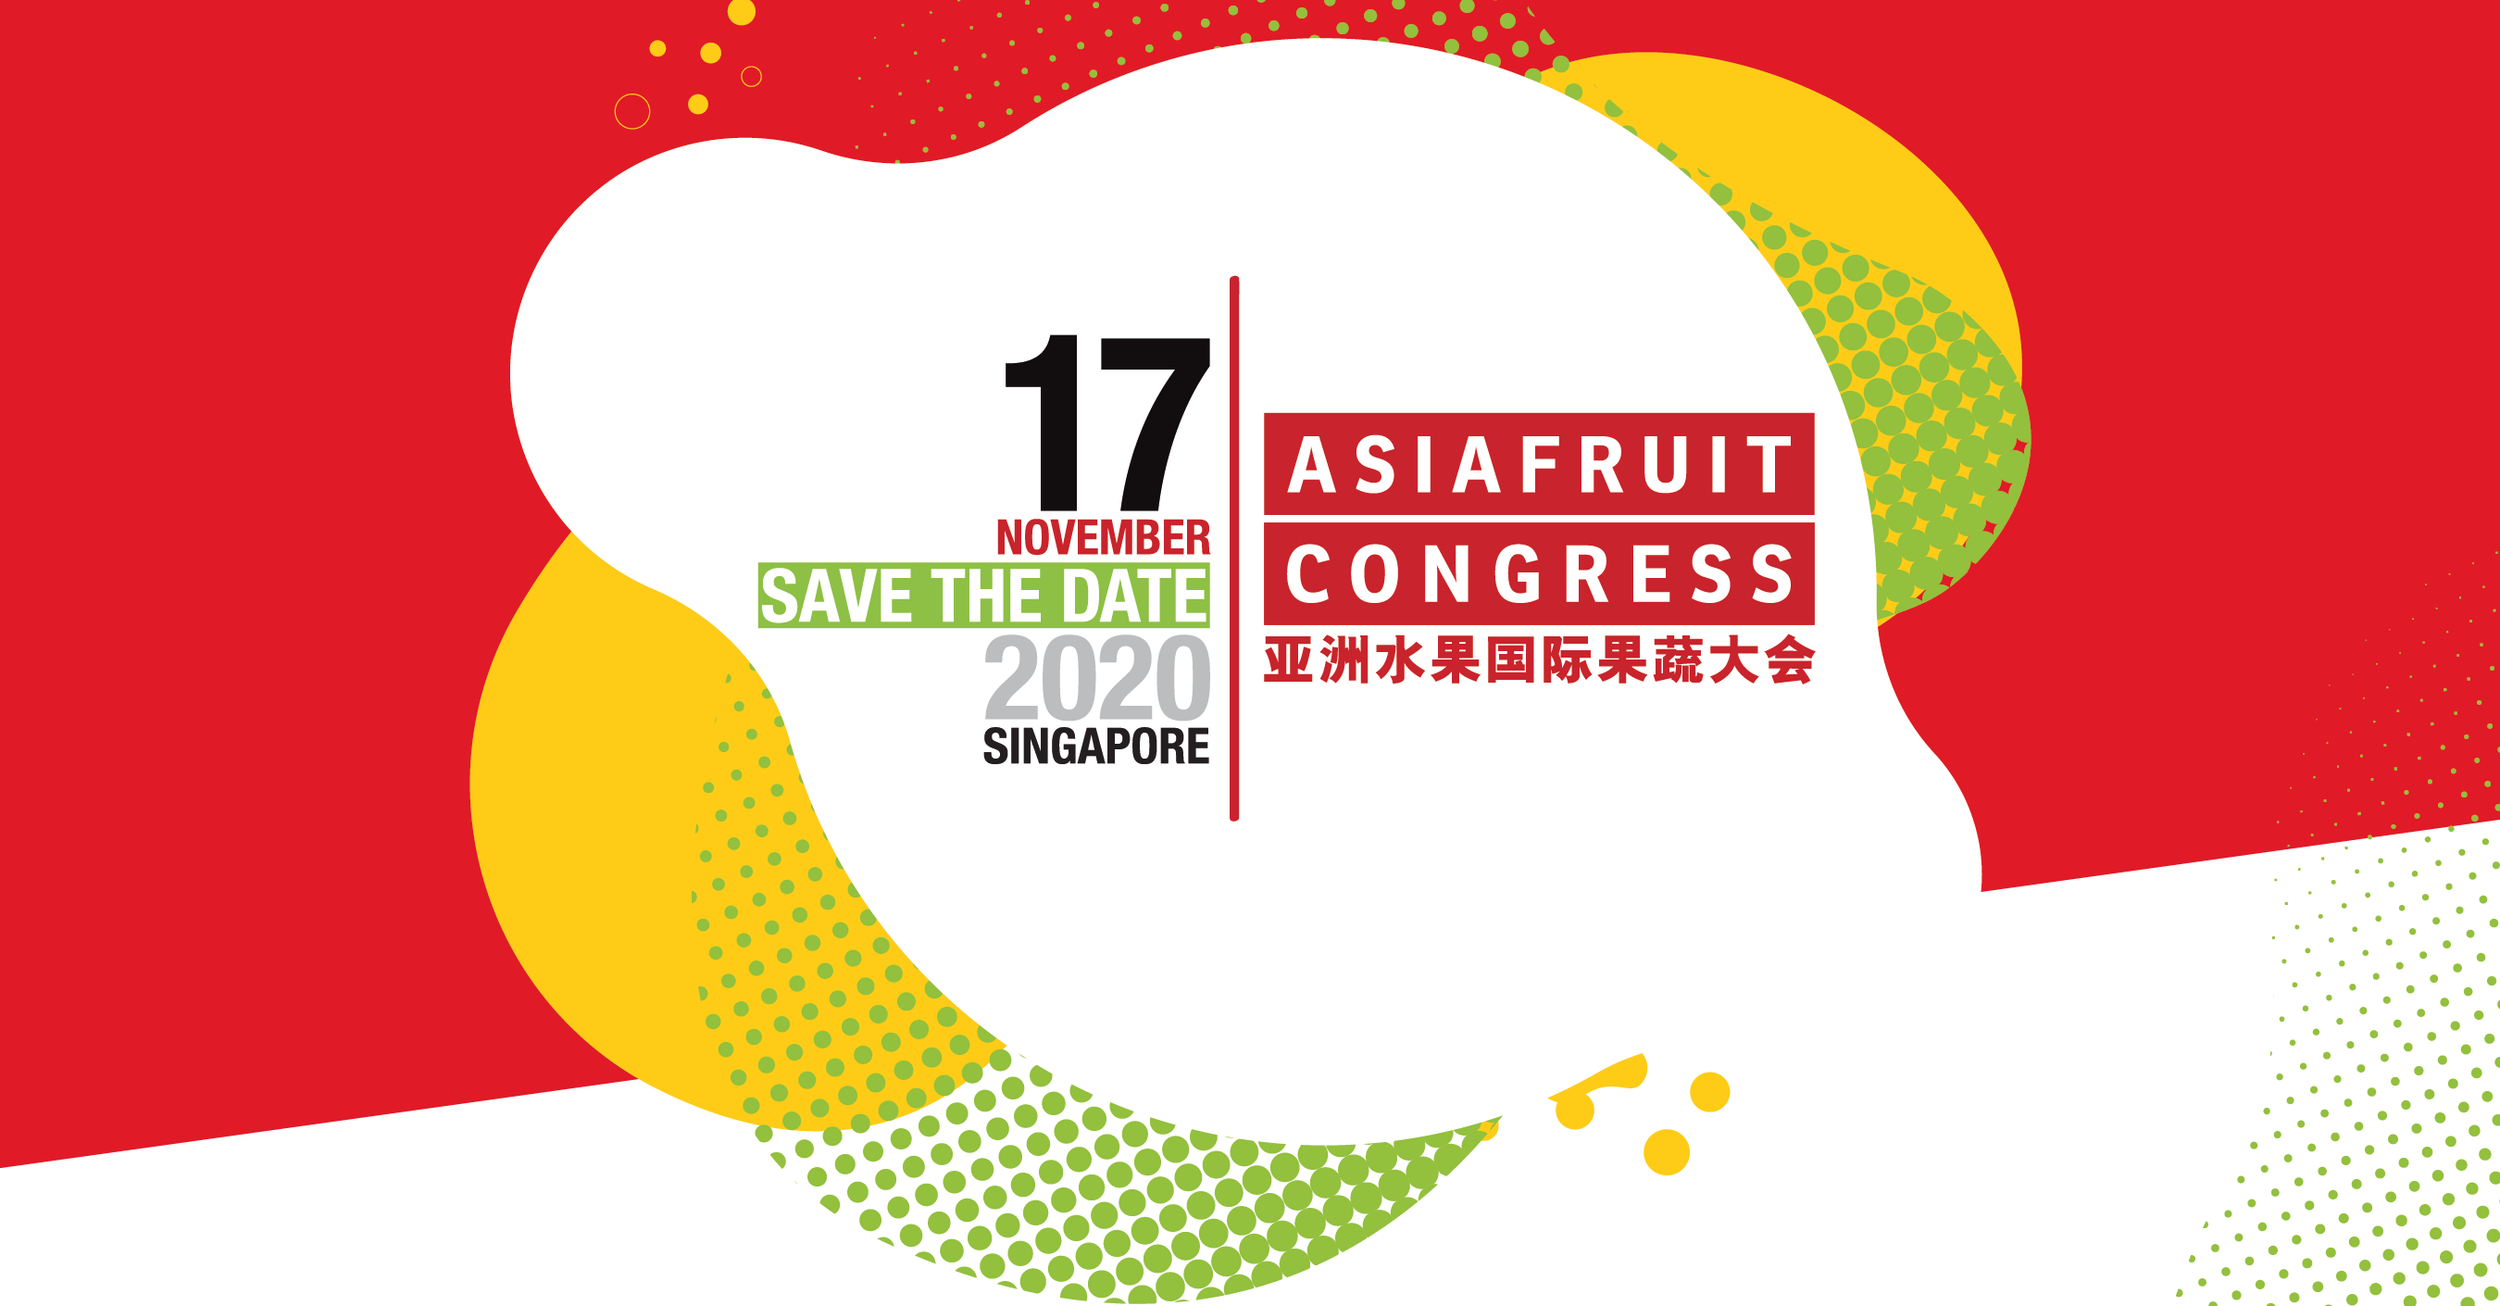 ASIAFRUIT CONGRESS 2020 will take place on November 17, 2020, in Singapore